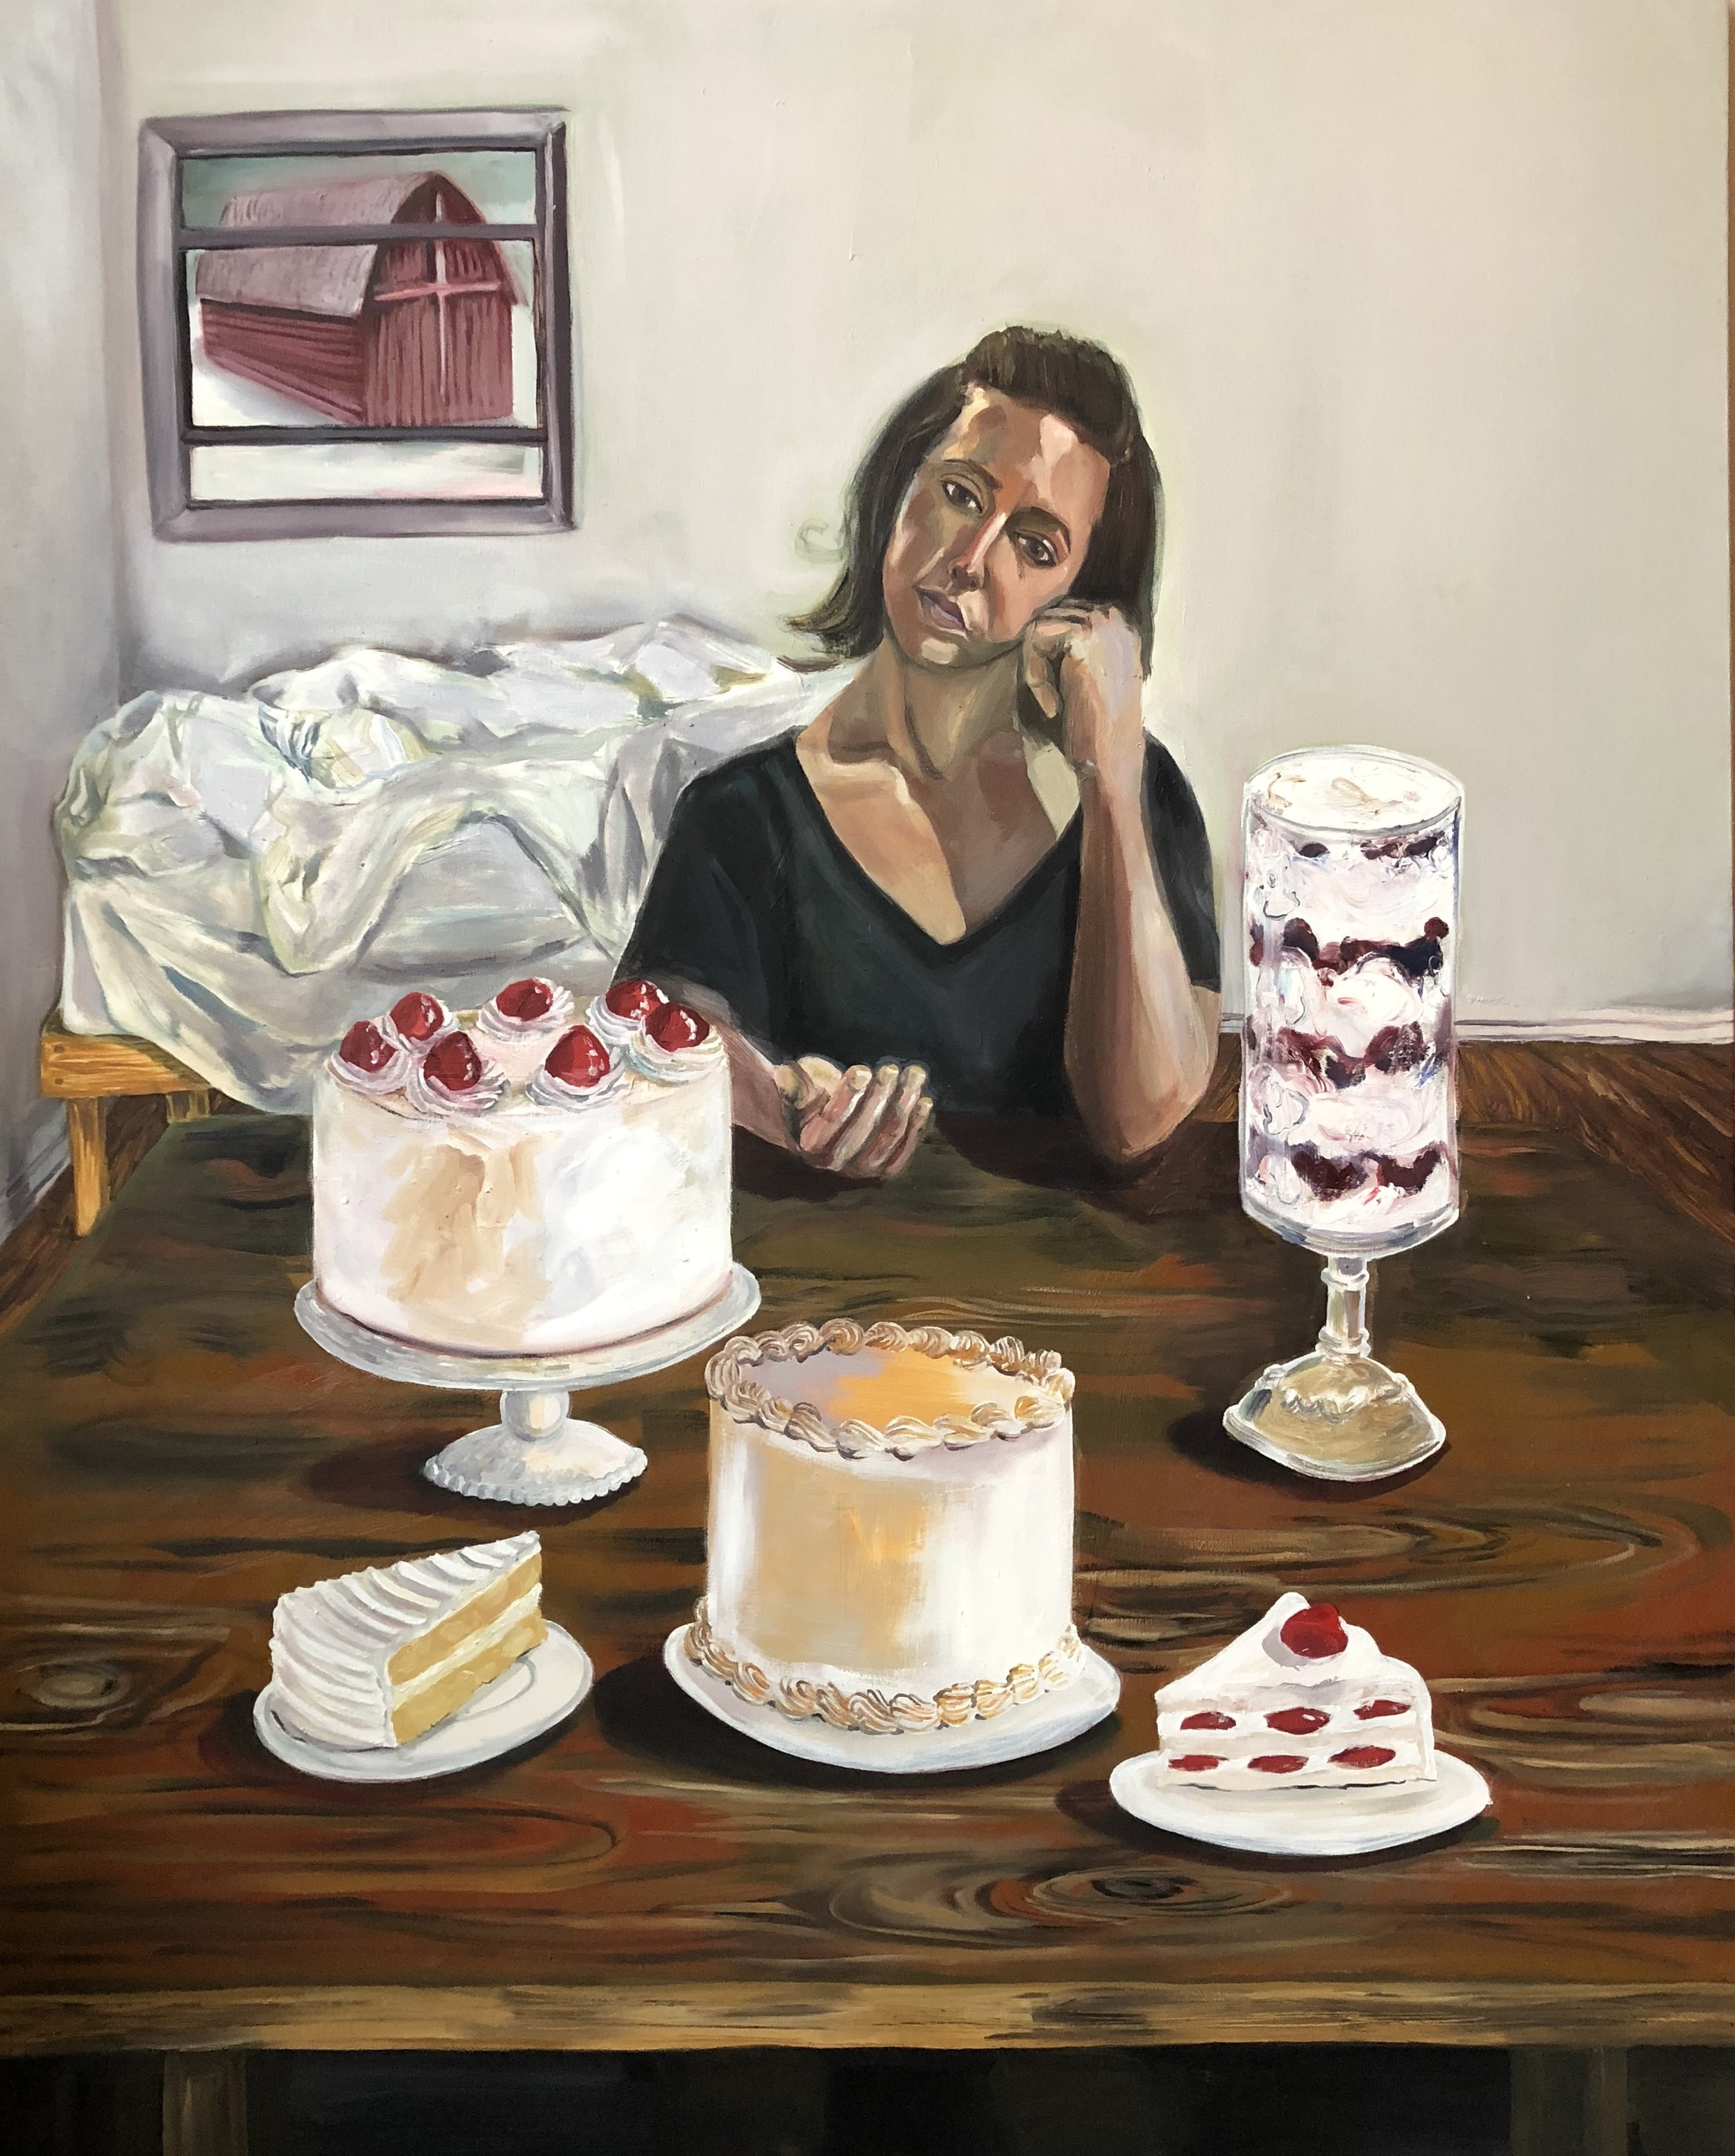 Self-portrait with cakes